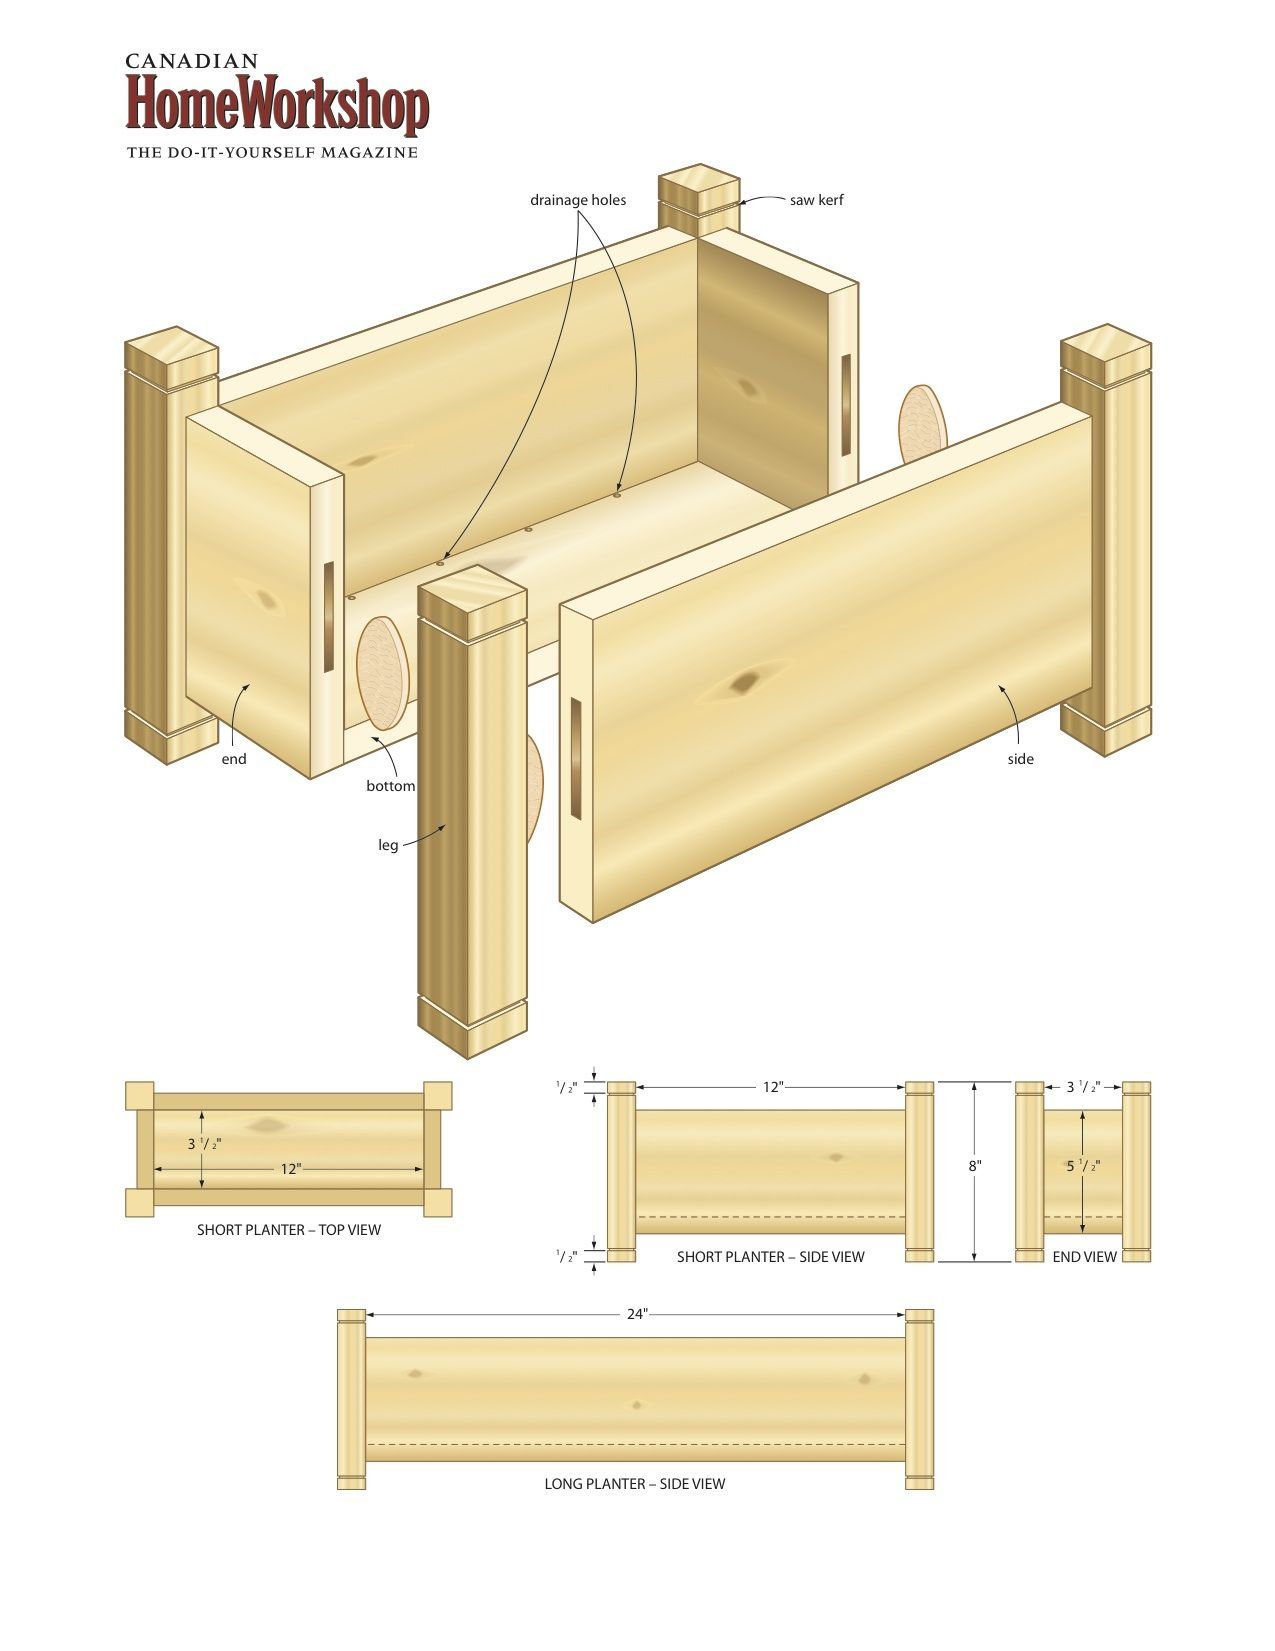 medium resolution of deck planter box part 2 canada homeworkshop i think it would need more support than just biscuting